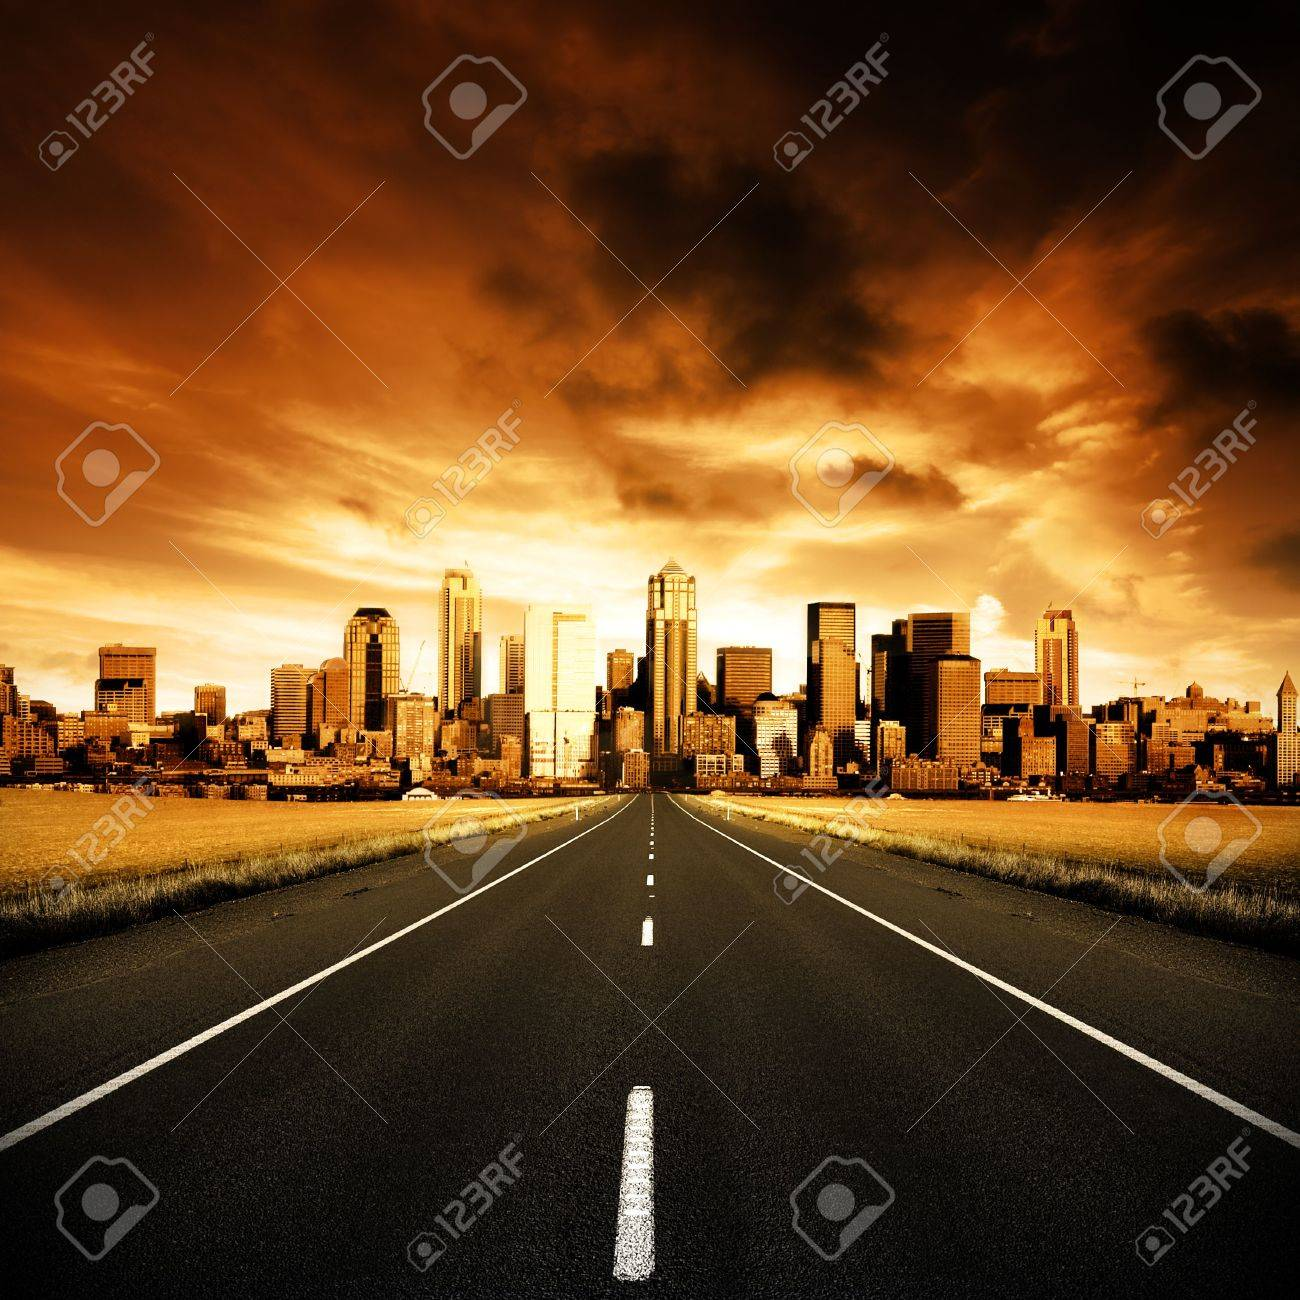 Highway heading to the city Stock Photo - 3147105